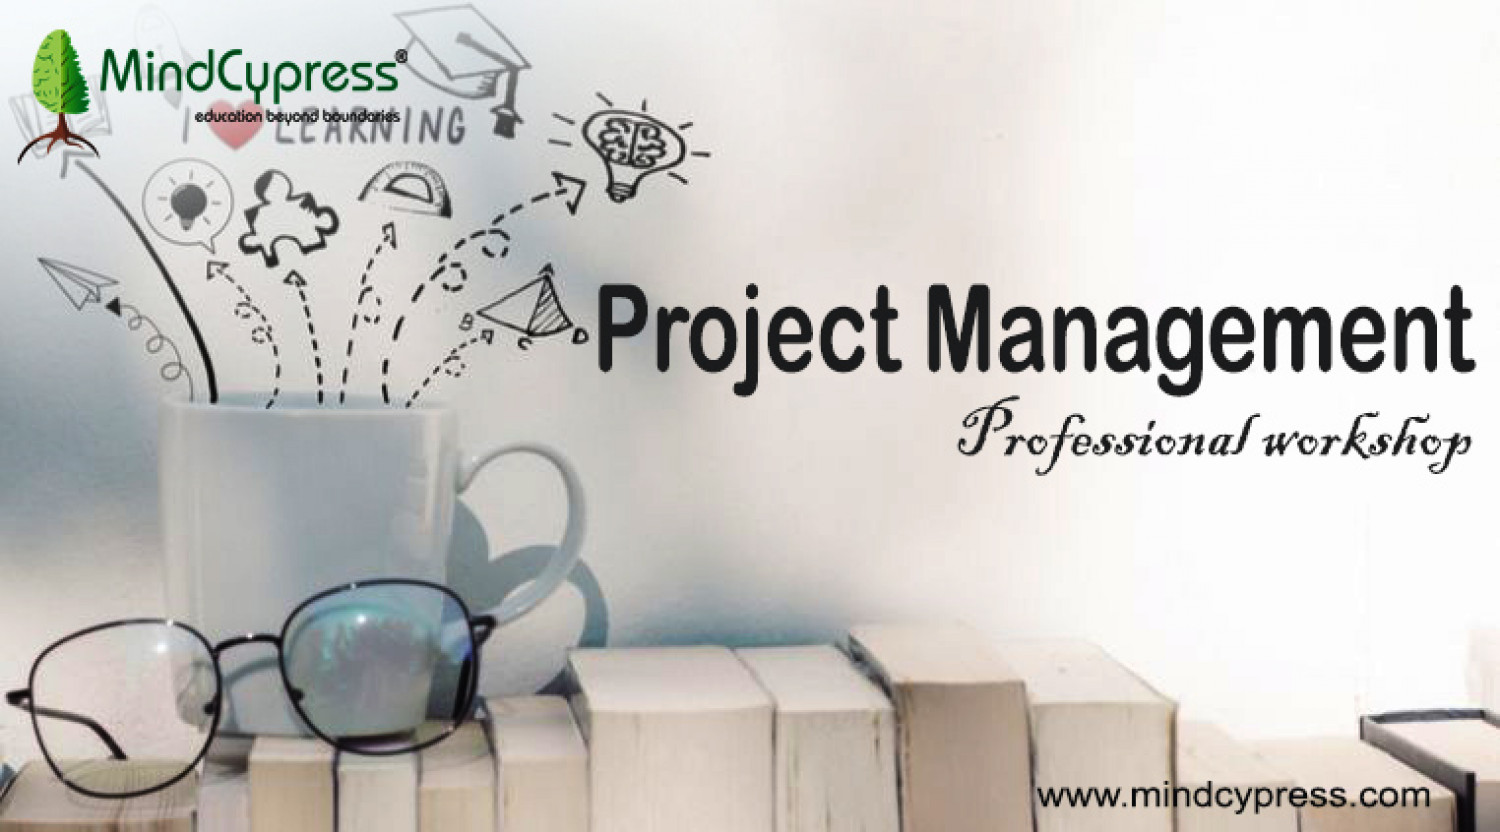 PMP Certification Workshop | PMP Certification Training 2019 | Project Management Professional Workshop | MindCypress Infographic